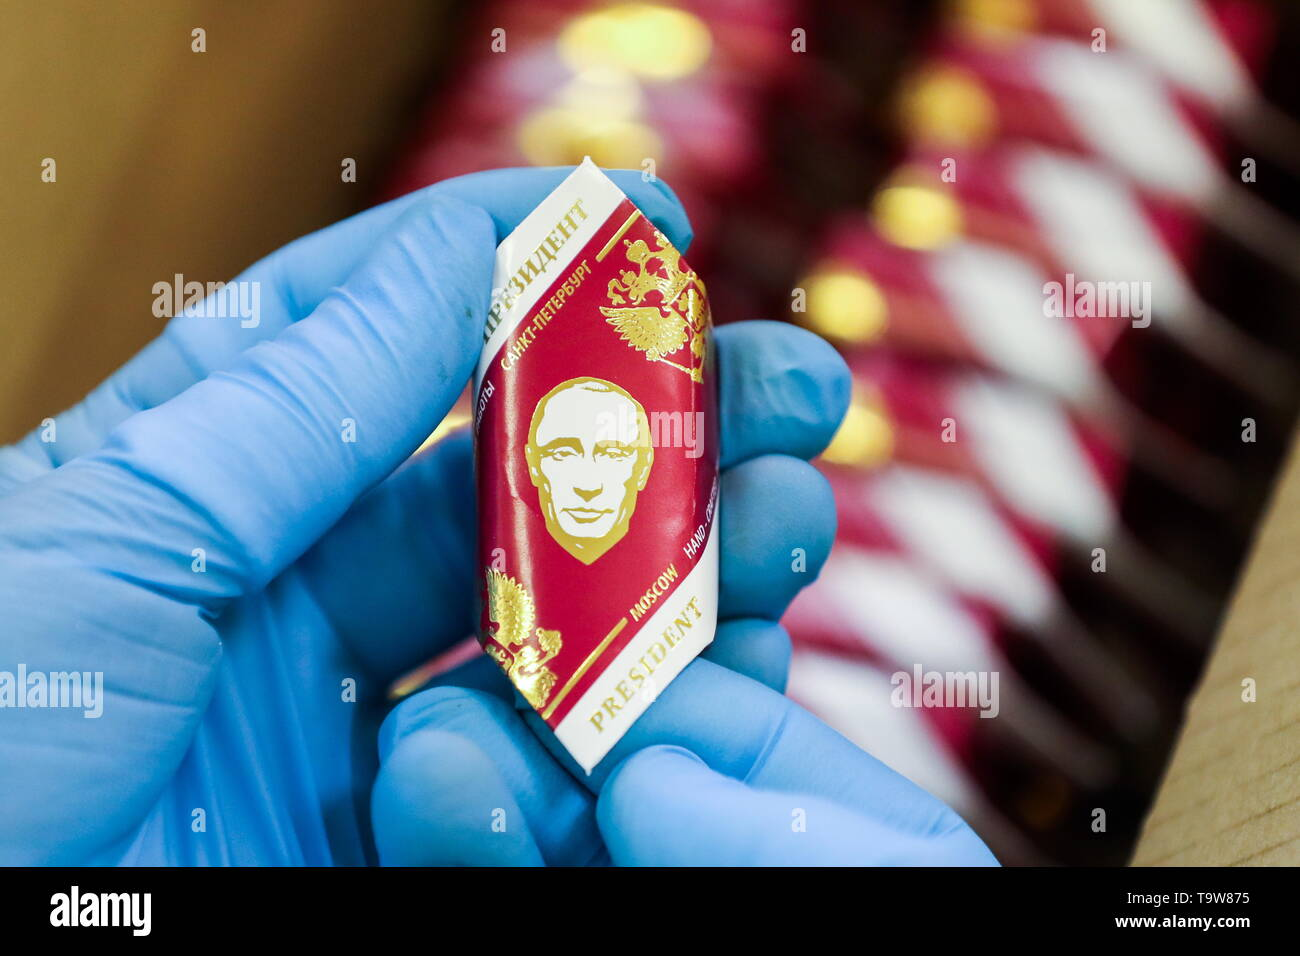 St Petersburg, Russia. 20th May, 2019. ST PETERSBURG, RUSSIA - MAY 20, 2019: A sweet wrapper bearing an image of Russian President Vladimir Putin produced at the GC - Golden Candies factory. Peter Kovalev/TASS Credit: ITAR-TASS News Agency/Alamy Live News - Stock Image